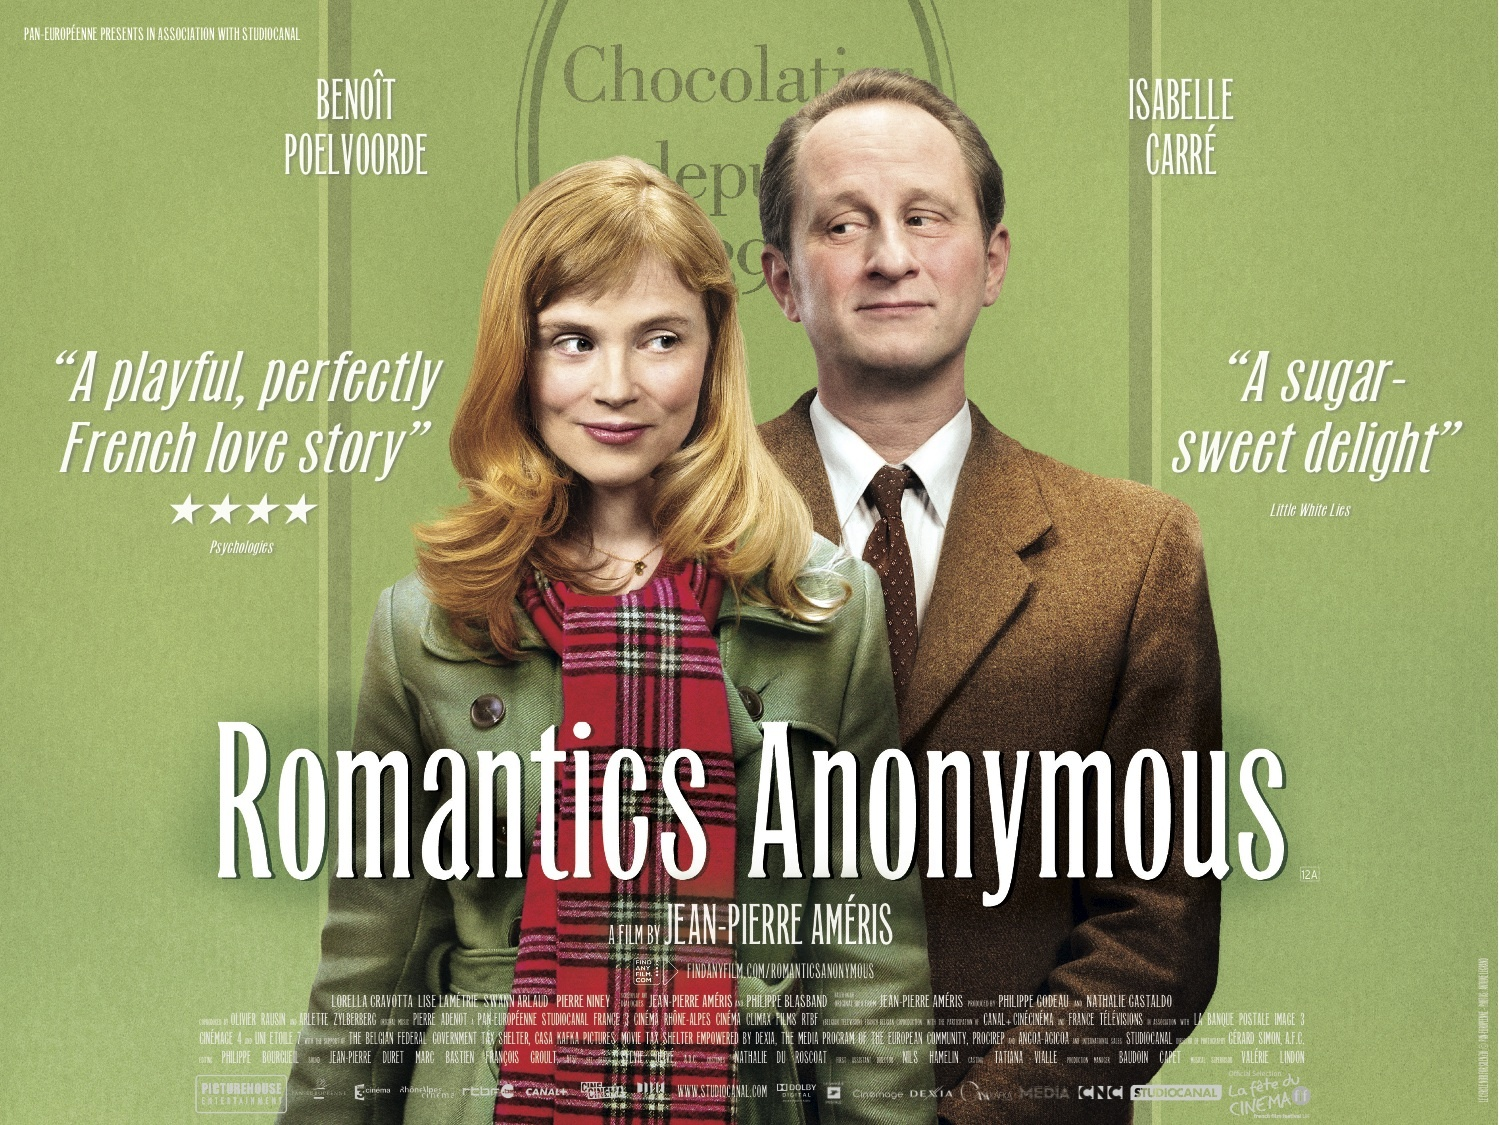 Isabelle Carré and Benoît Poelvoorde in Les émotifs anonymes (2010)